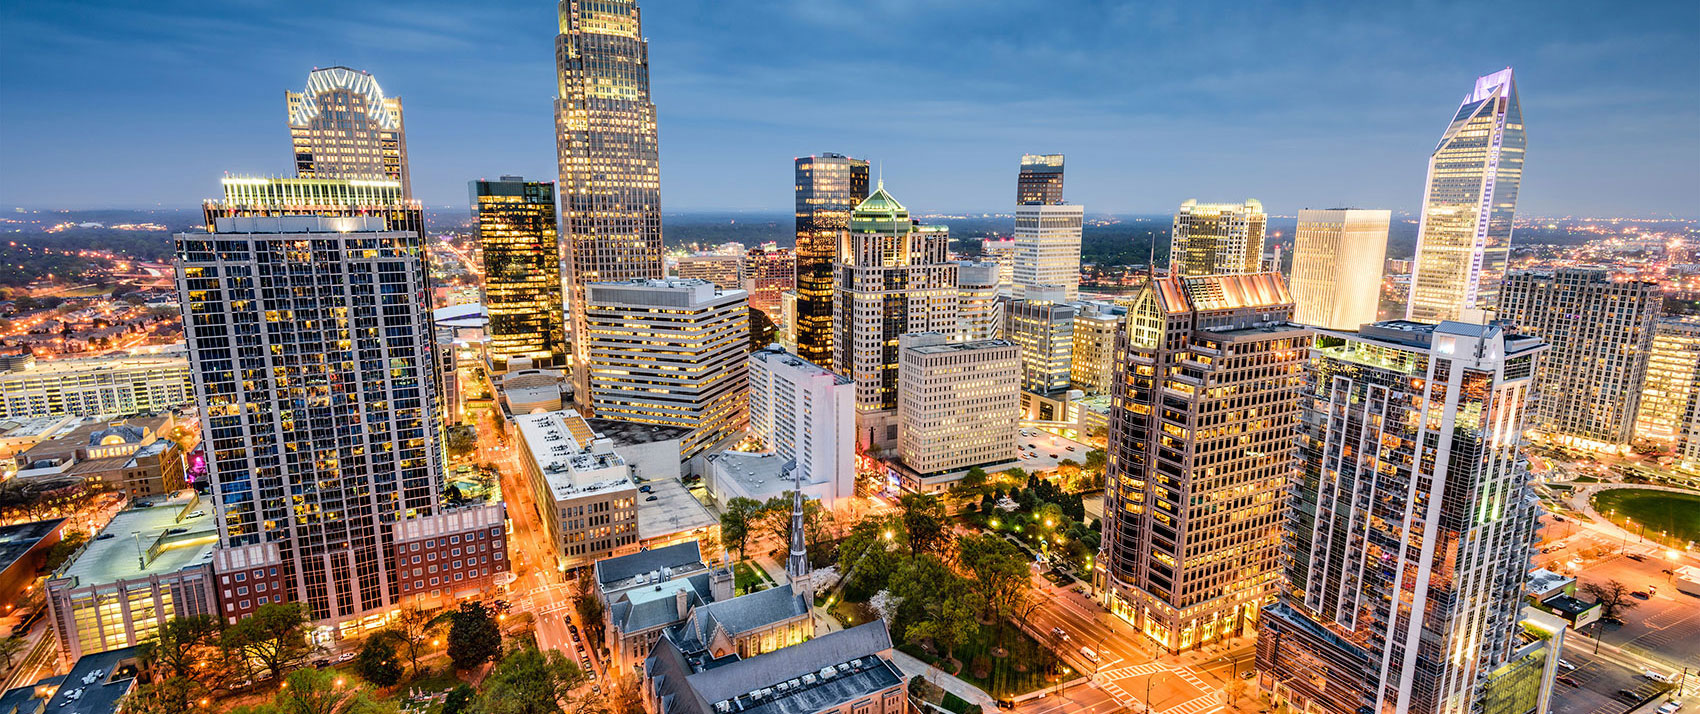 Hotels in Charlotte NC | Kimpton Tryon Park Hotel on